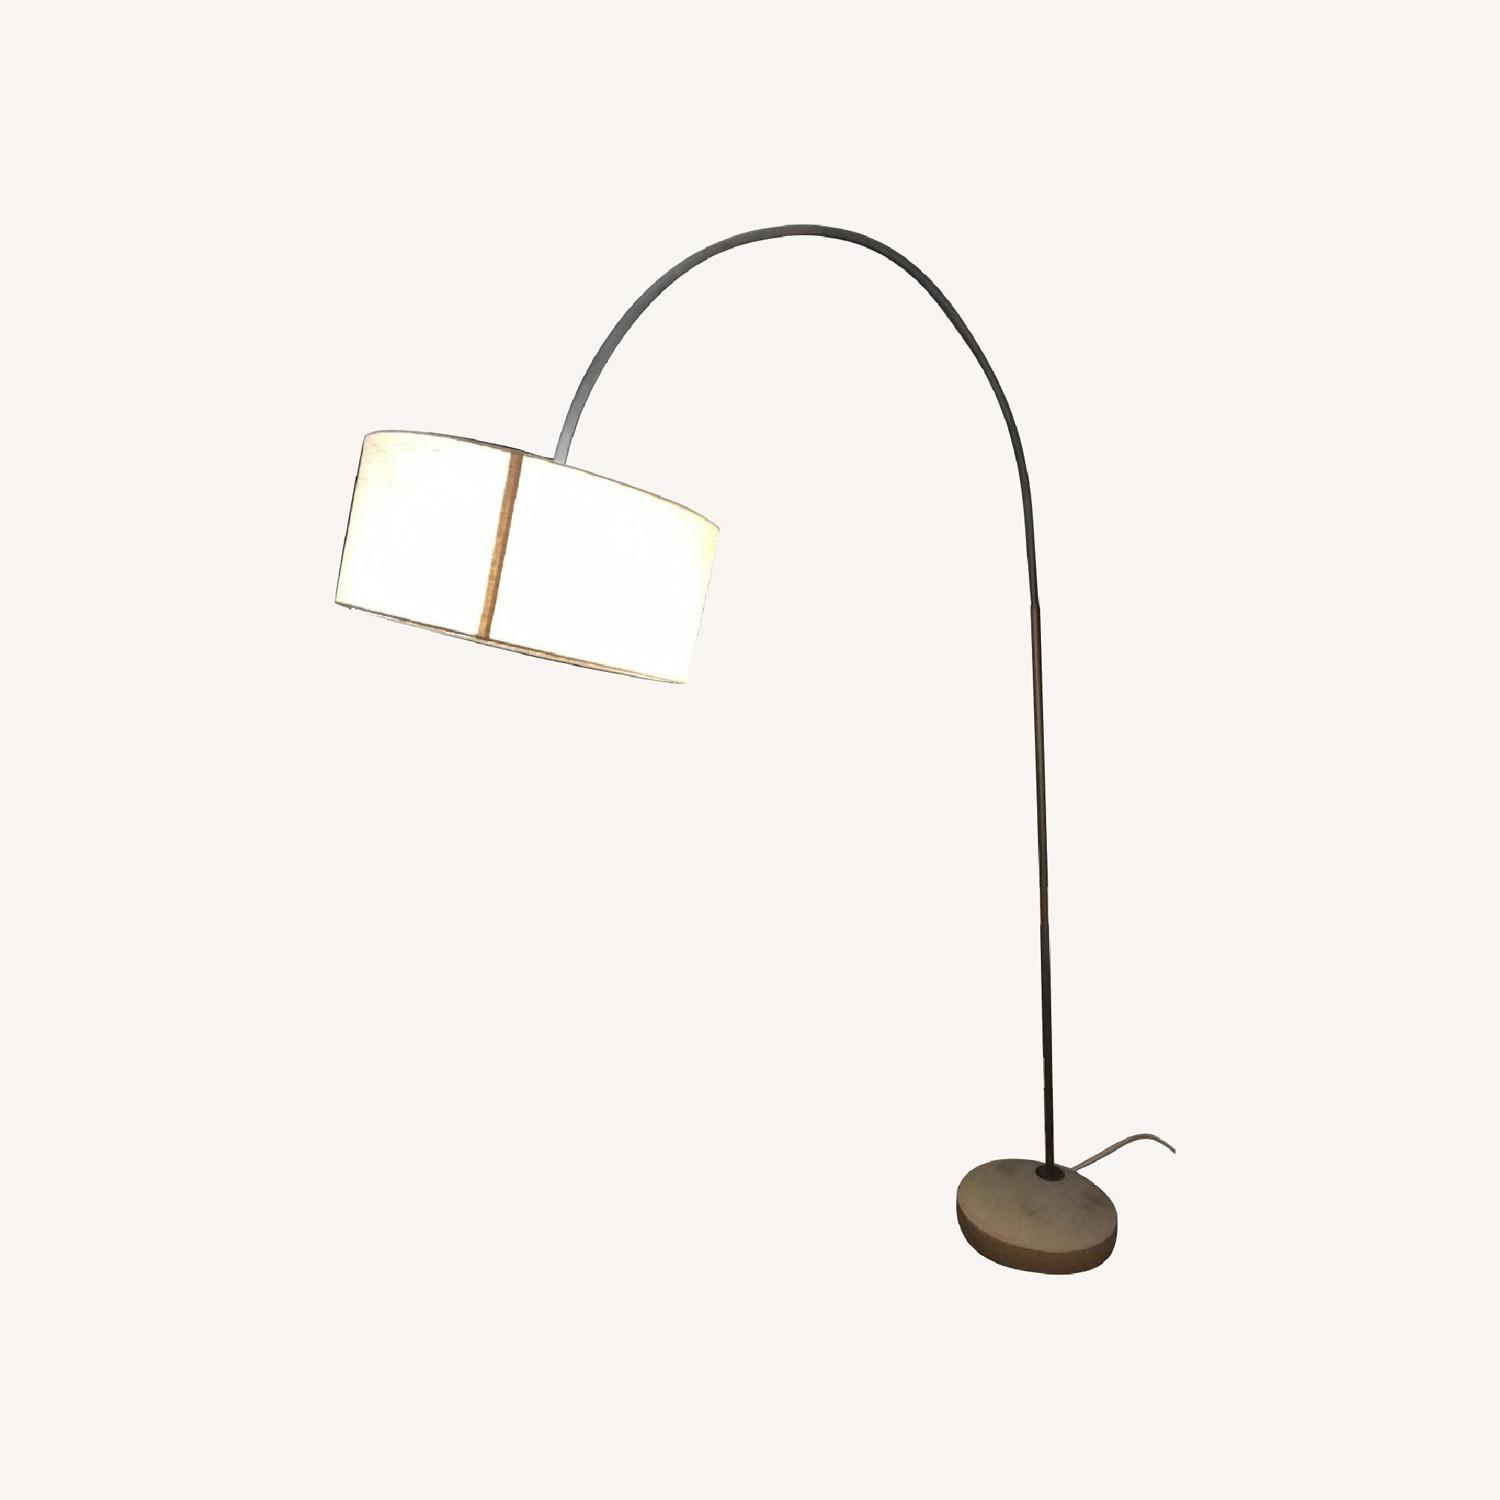 CB2 Arched Floor Lamp Beige Shade Concrete Base - image-0